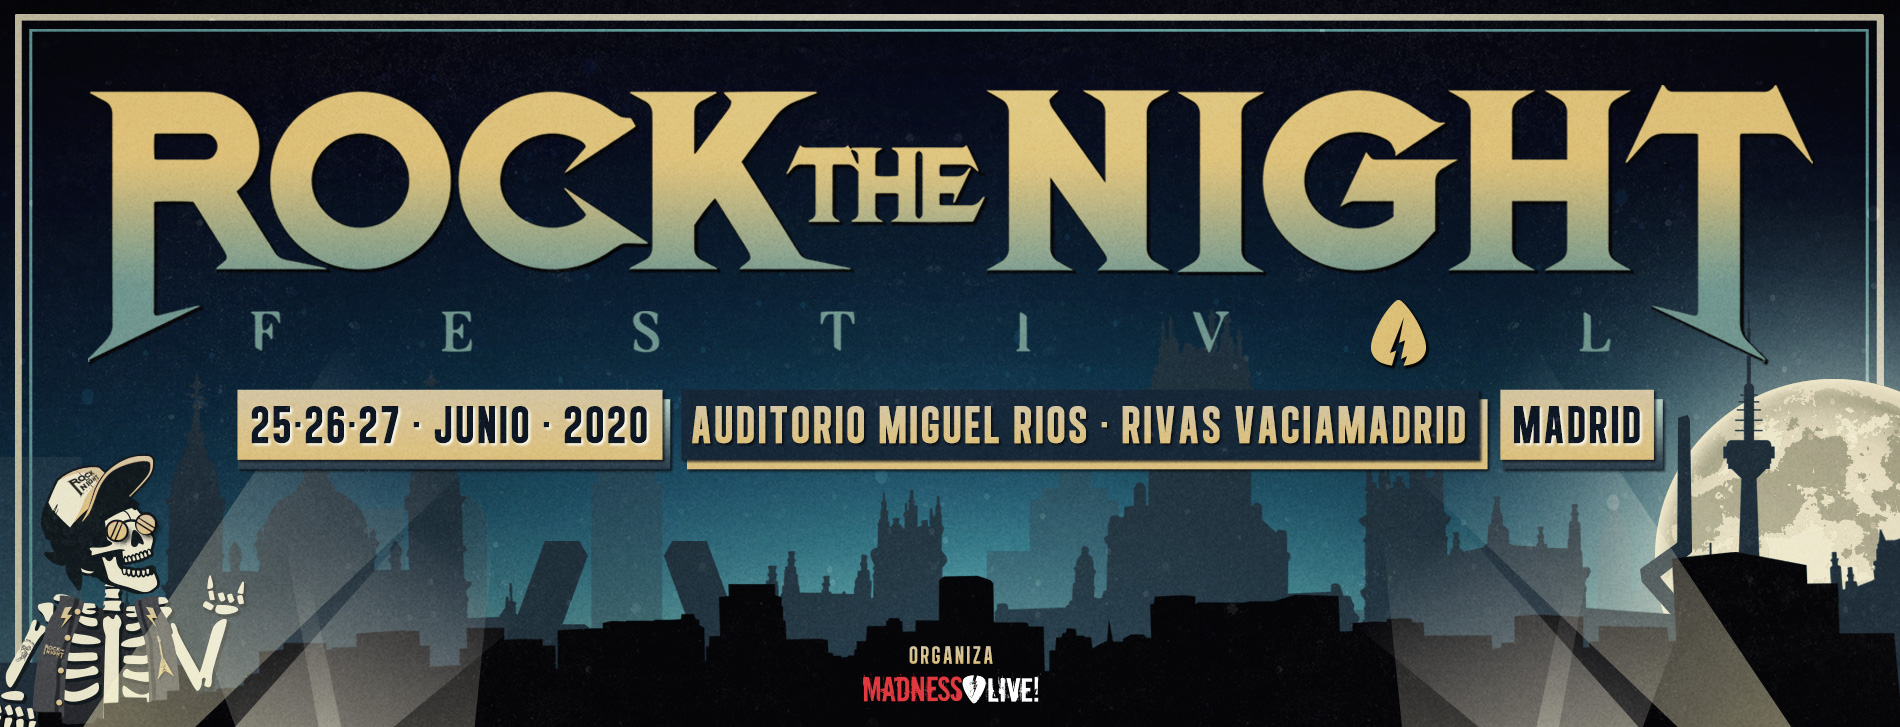 rockthenightfestival-header-2020